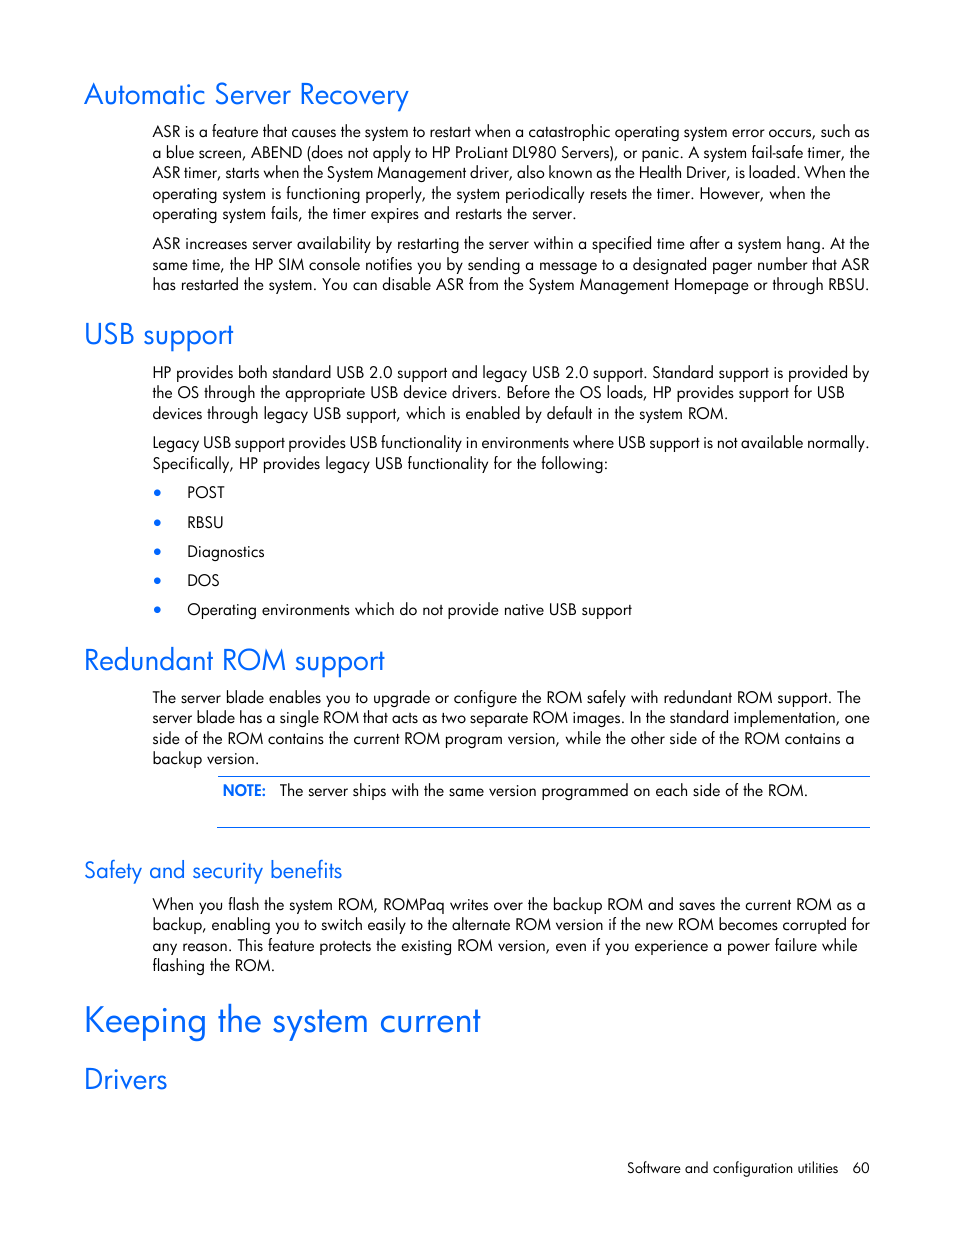 Automatic server recovery, Usb support, Redundant rom support | HP